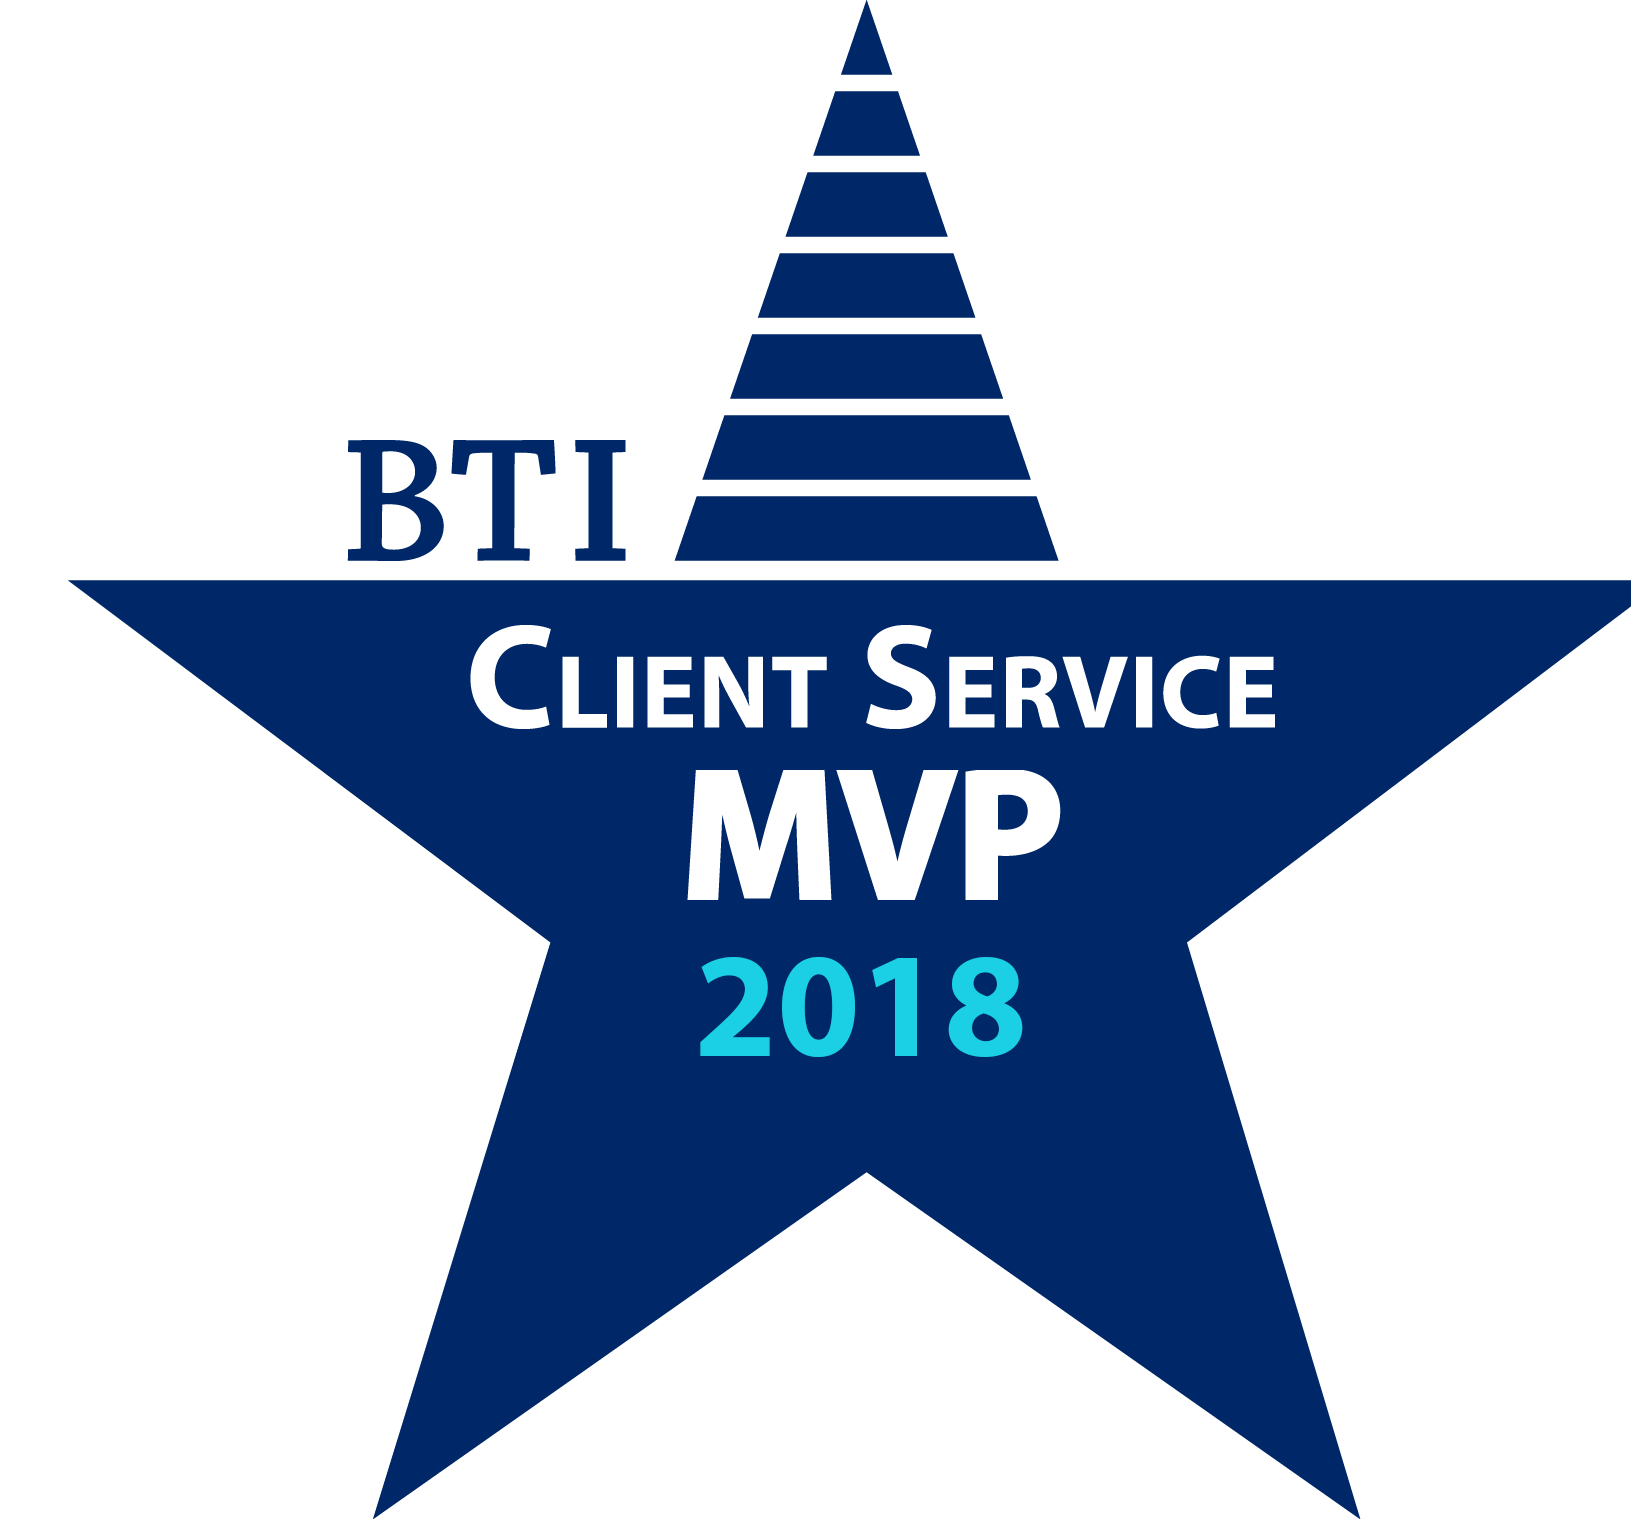 BTI Client Service All Star MVP 2018